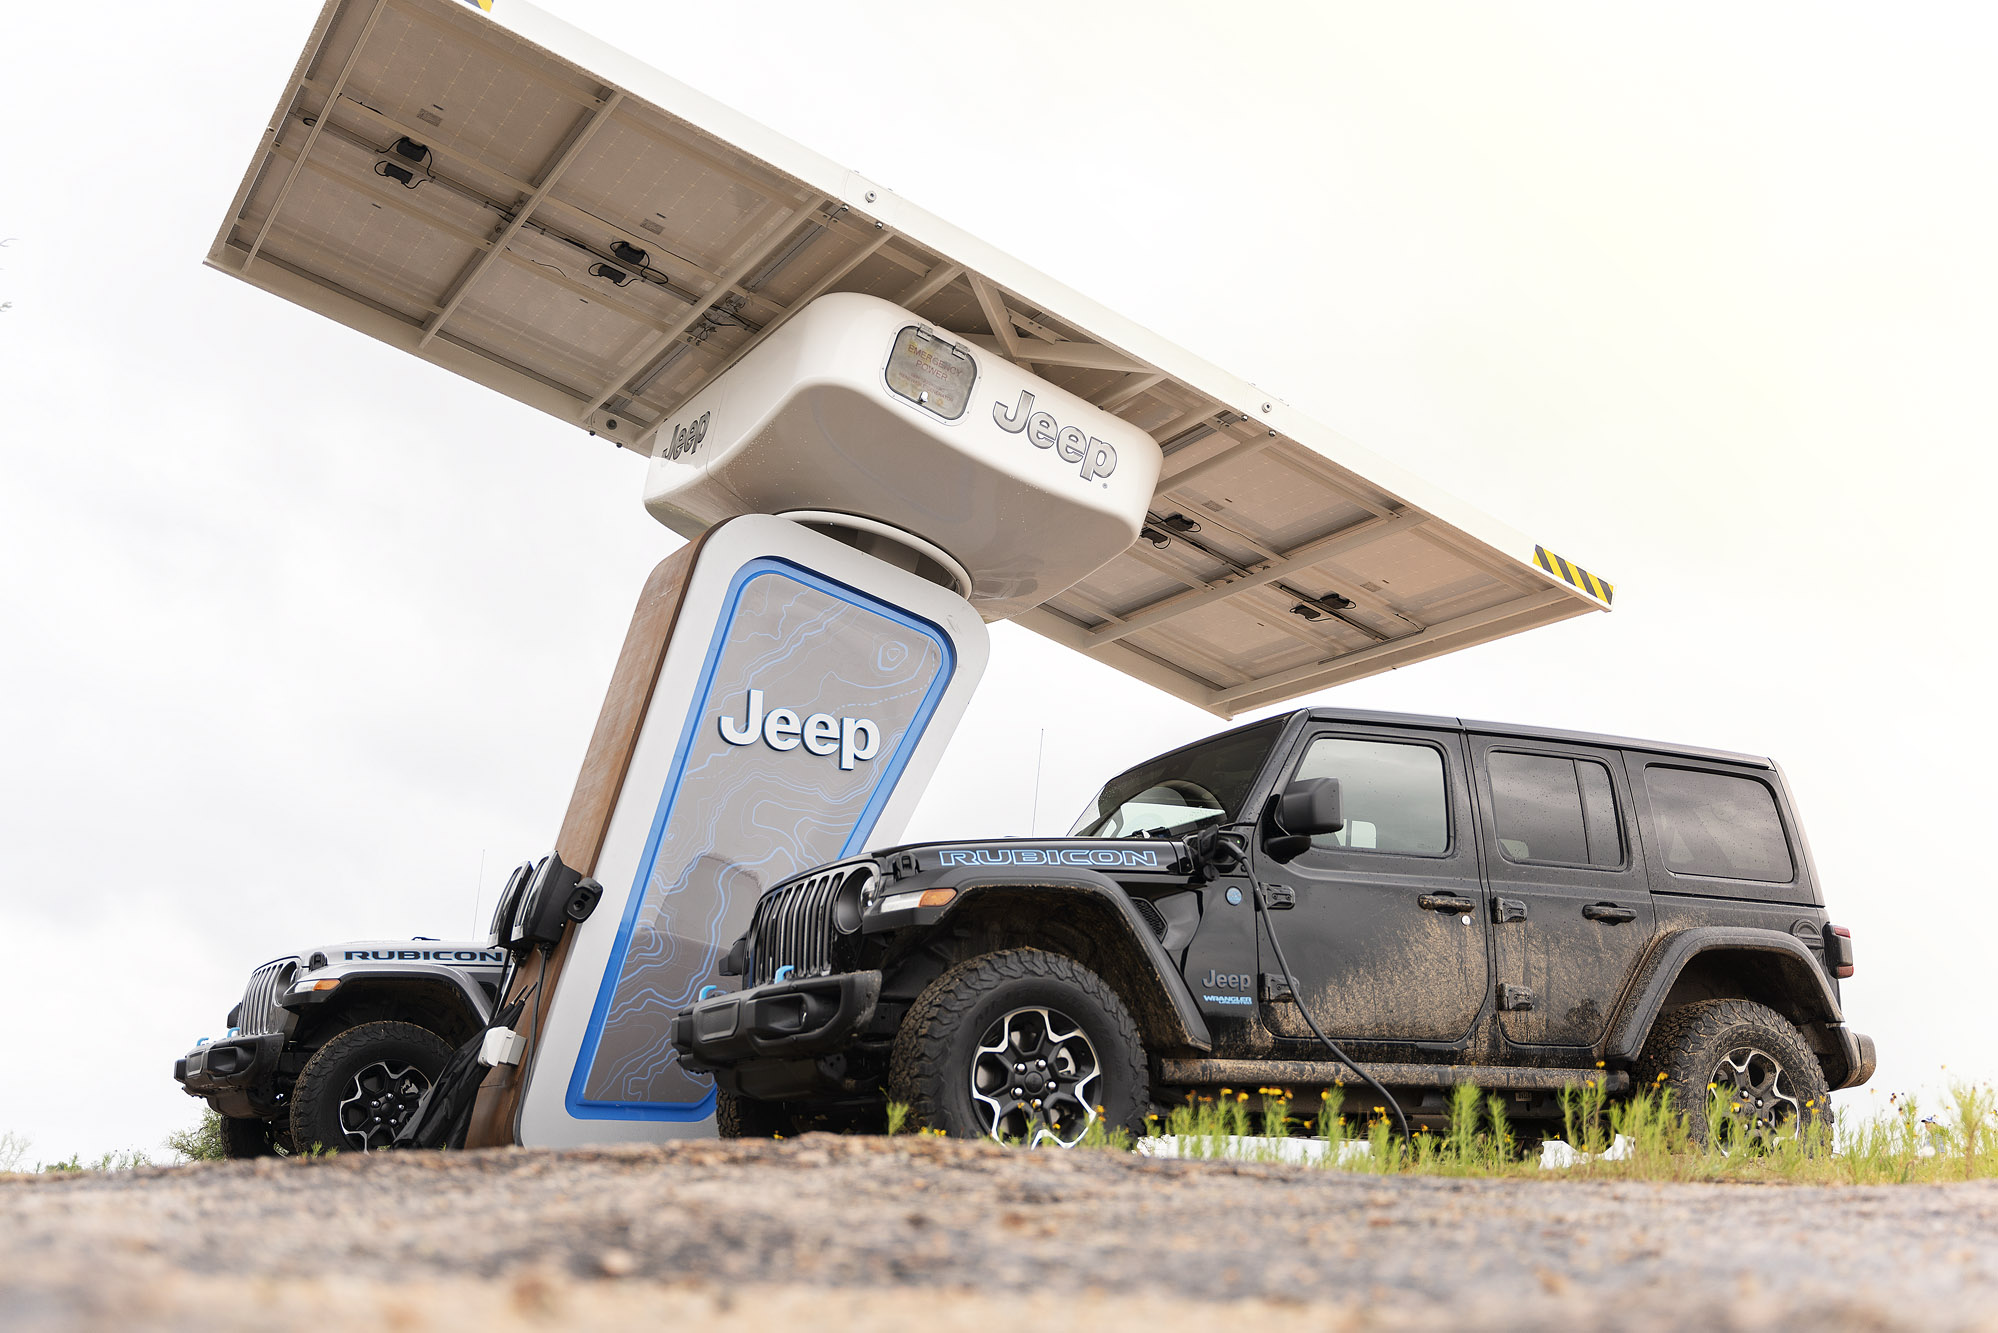 Jeep 4xe level 2 off-grid solar charging station